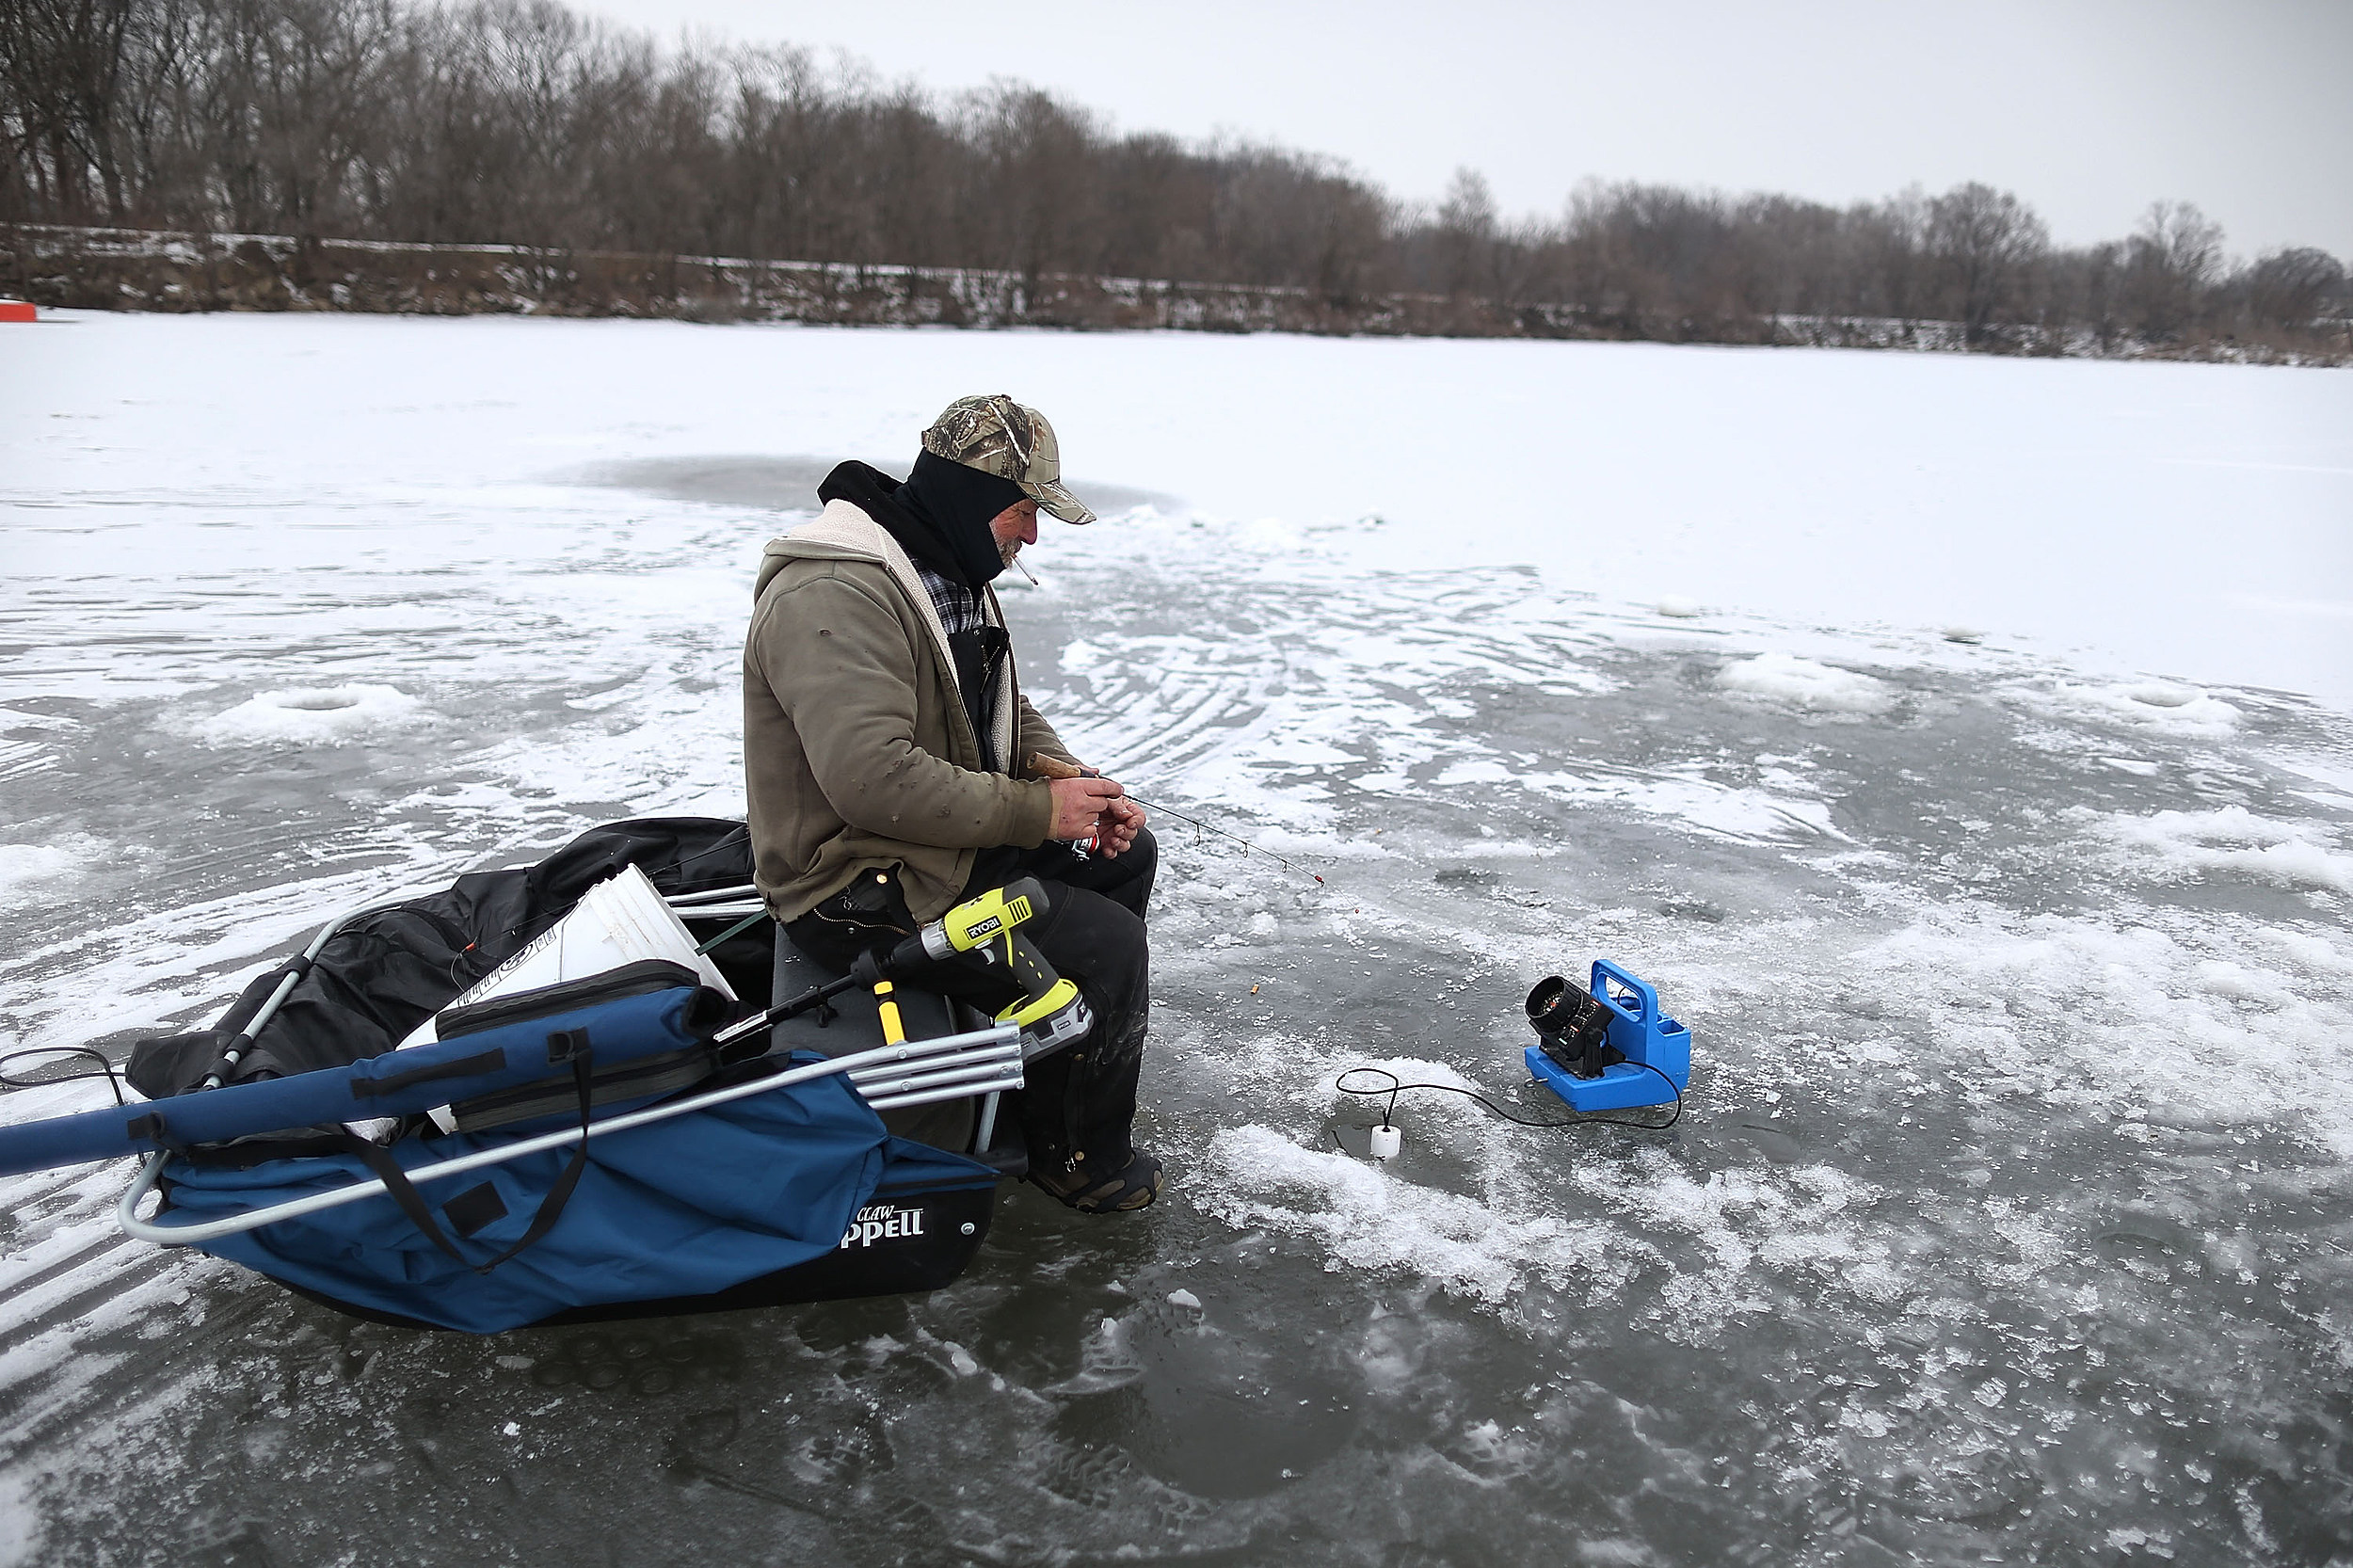 Ice fishing derby on hinckley lake saturday february 25th for Ice fishing tournament